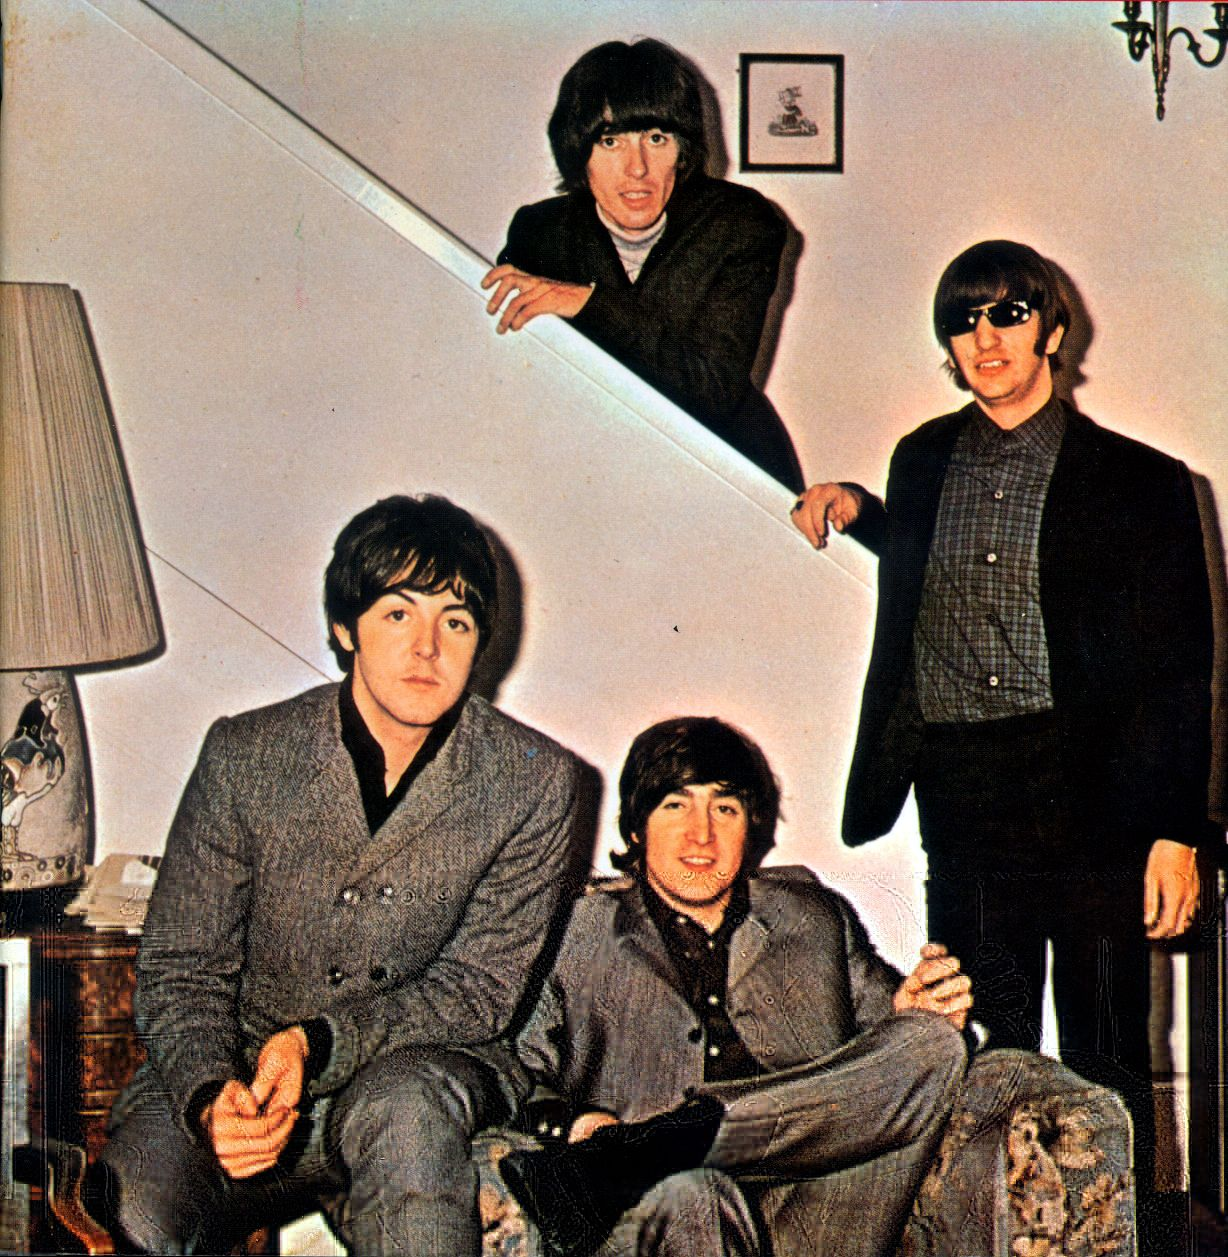 On December 1, 1965 The Beatles got together in the home of Mal Evans to rehearse and put together a set list for a 9 city UK tour that went from December 3, 1965 - December 12, 1965